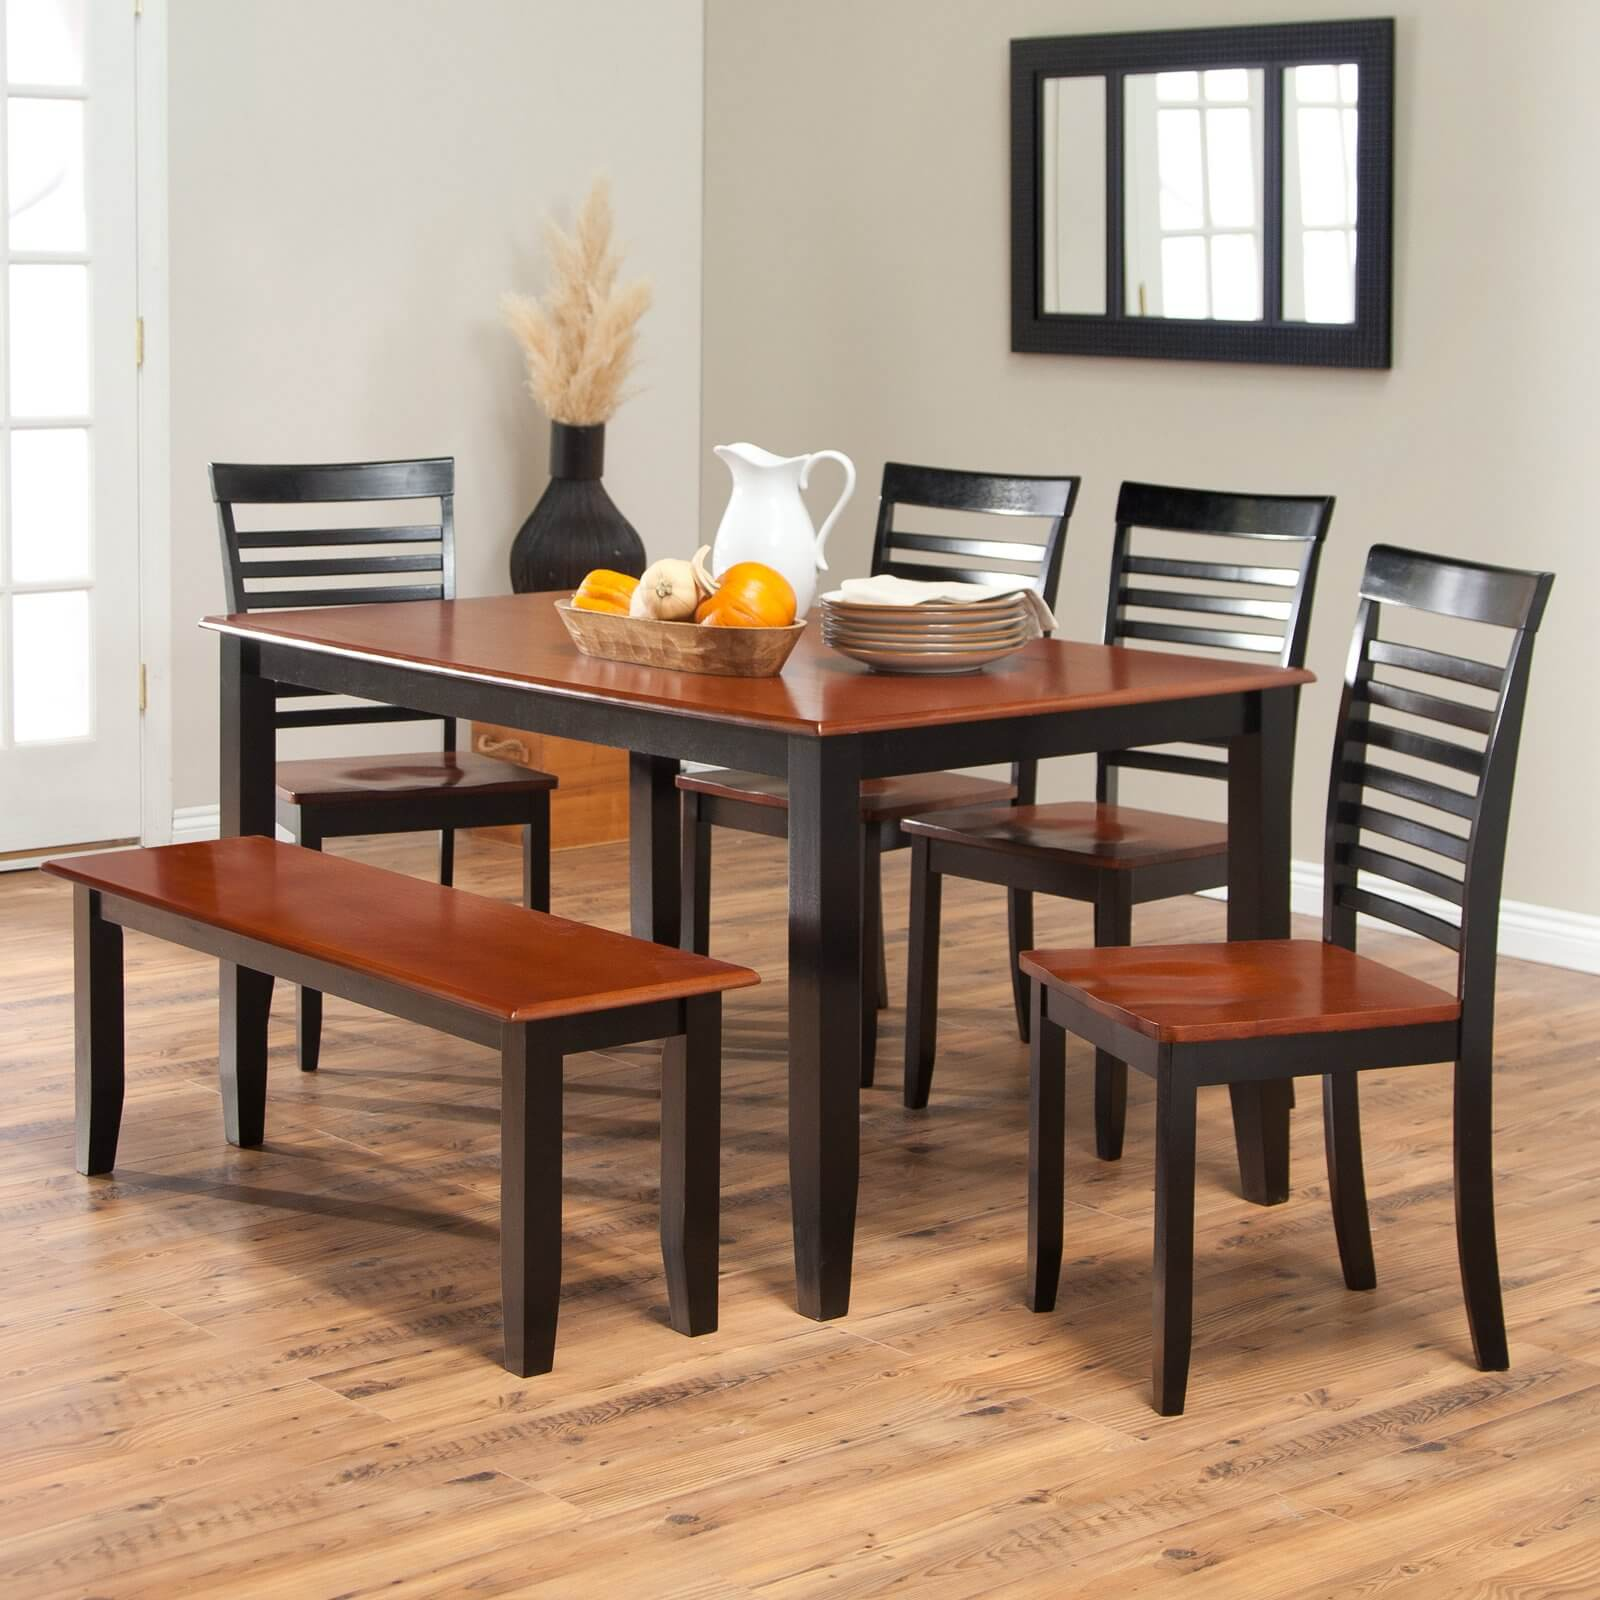 simple two toned dining set with bench the seats and table top are cherry - All Wood Dining Room Table